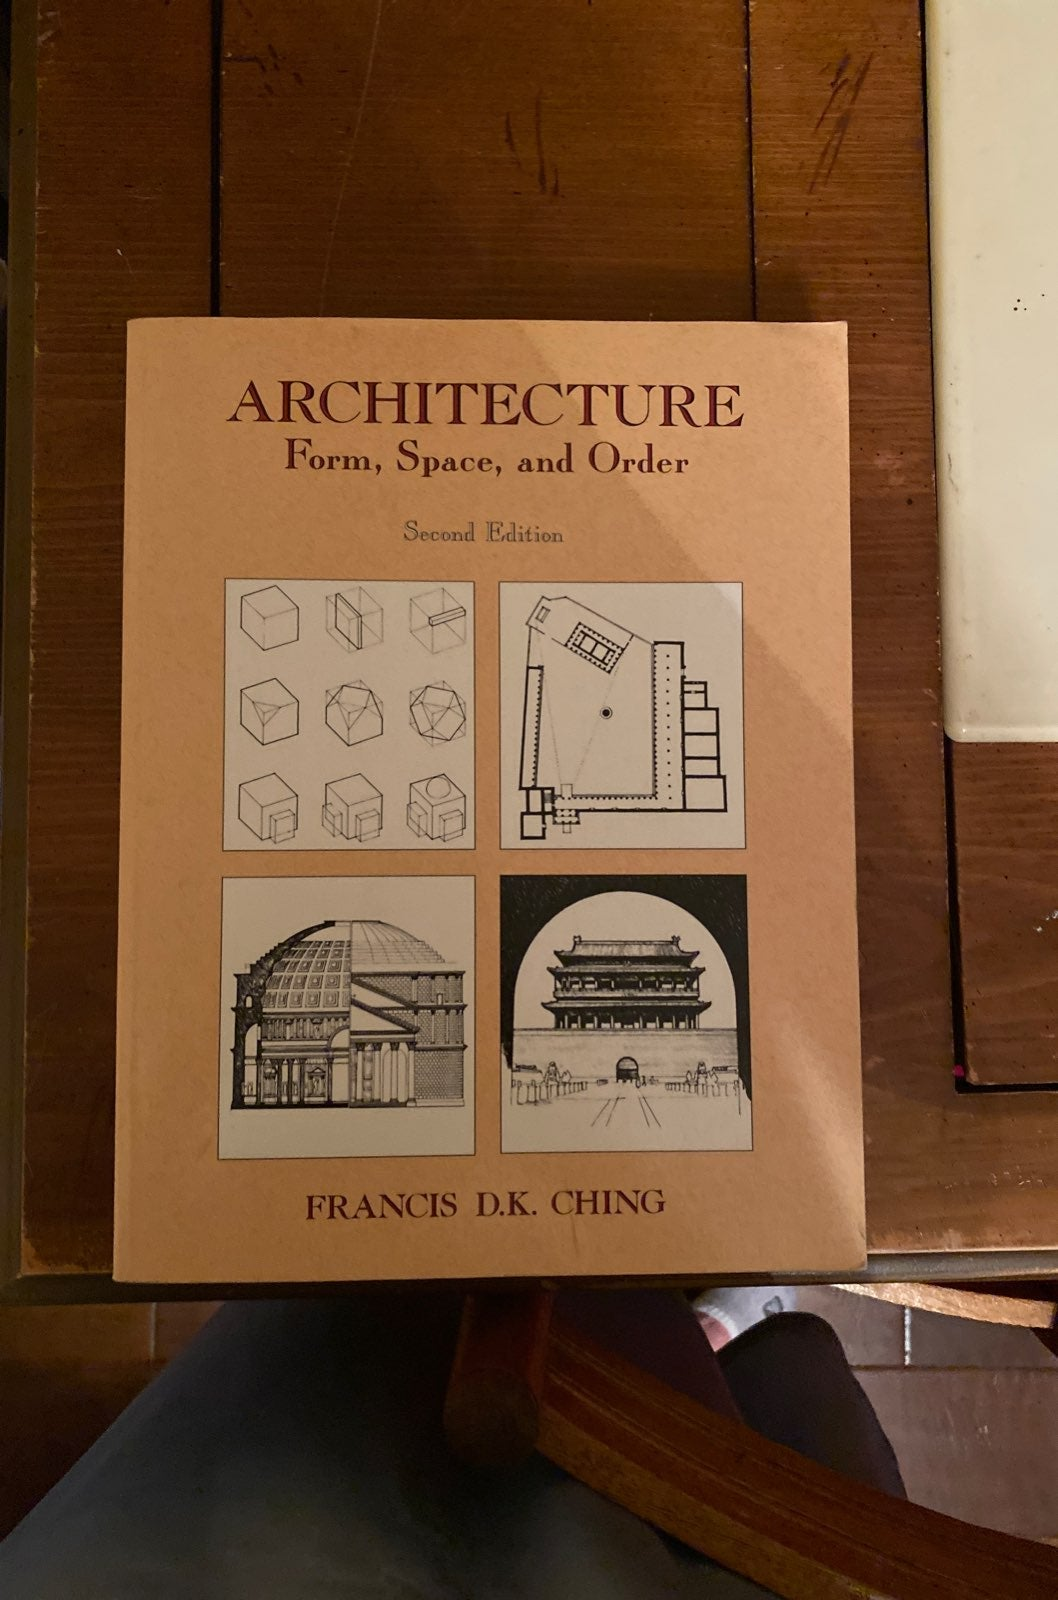 Architecture Form,Space and Order